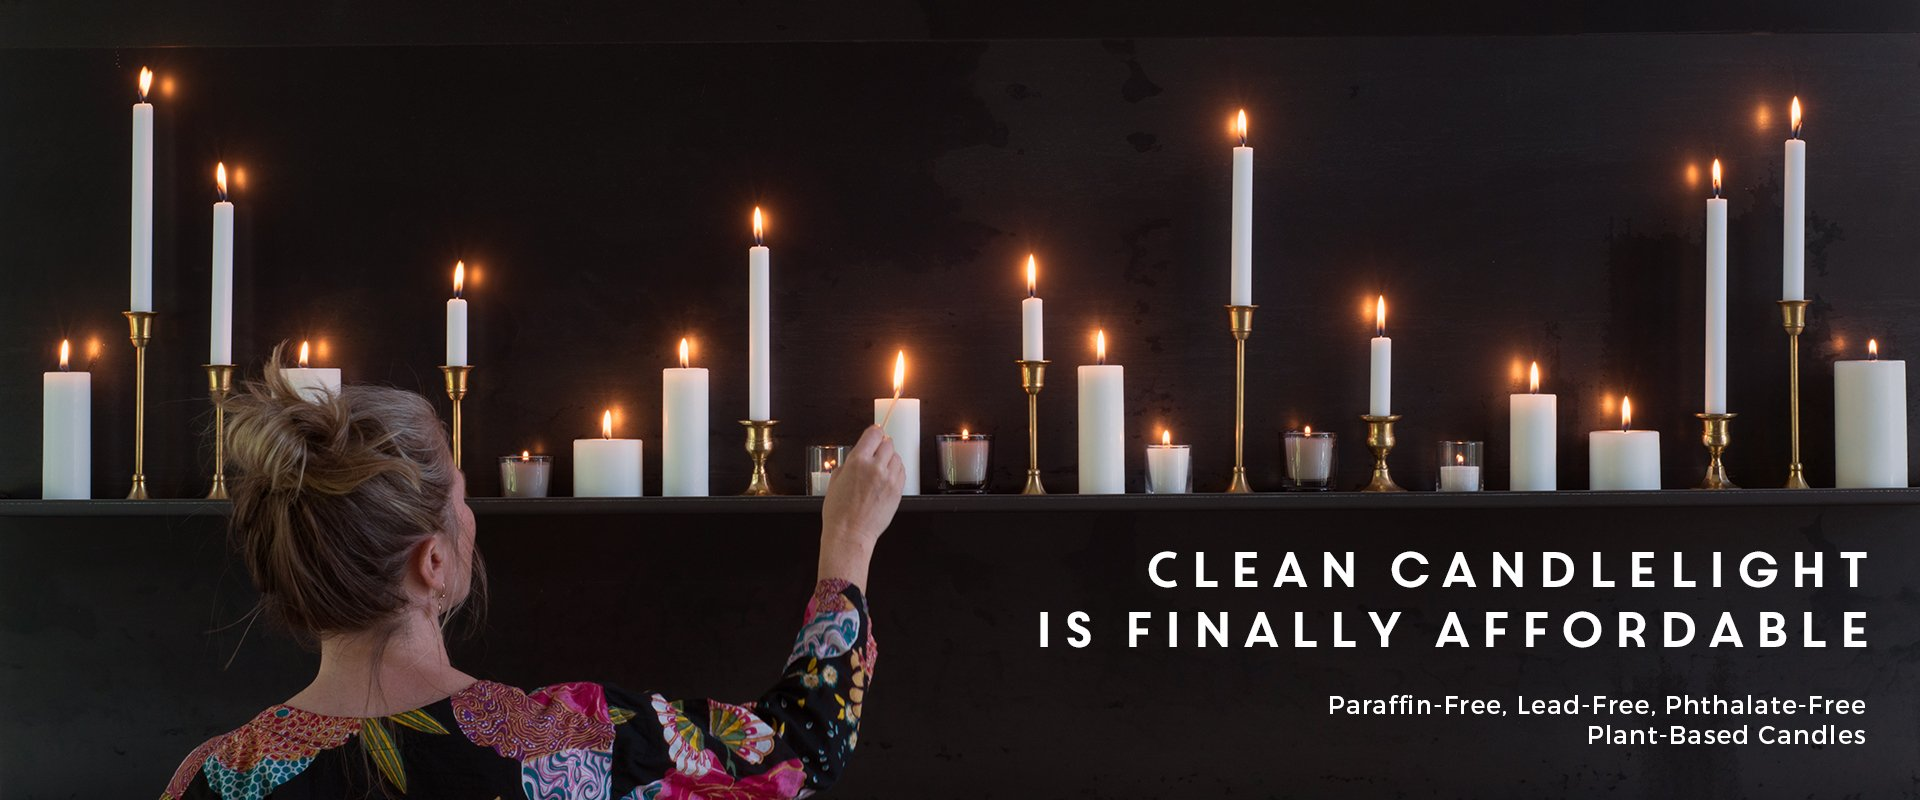 paraffin free, all natural, lead free, phthalate free, non-toxic, clean burning, candles, eco-friendly, asthma friendly, votives, tea lights, tapers, pillars, natural candles, allergy friendly, yoga, restaurant, church, worship, meditation, vigil, wedding, event, party